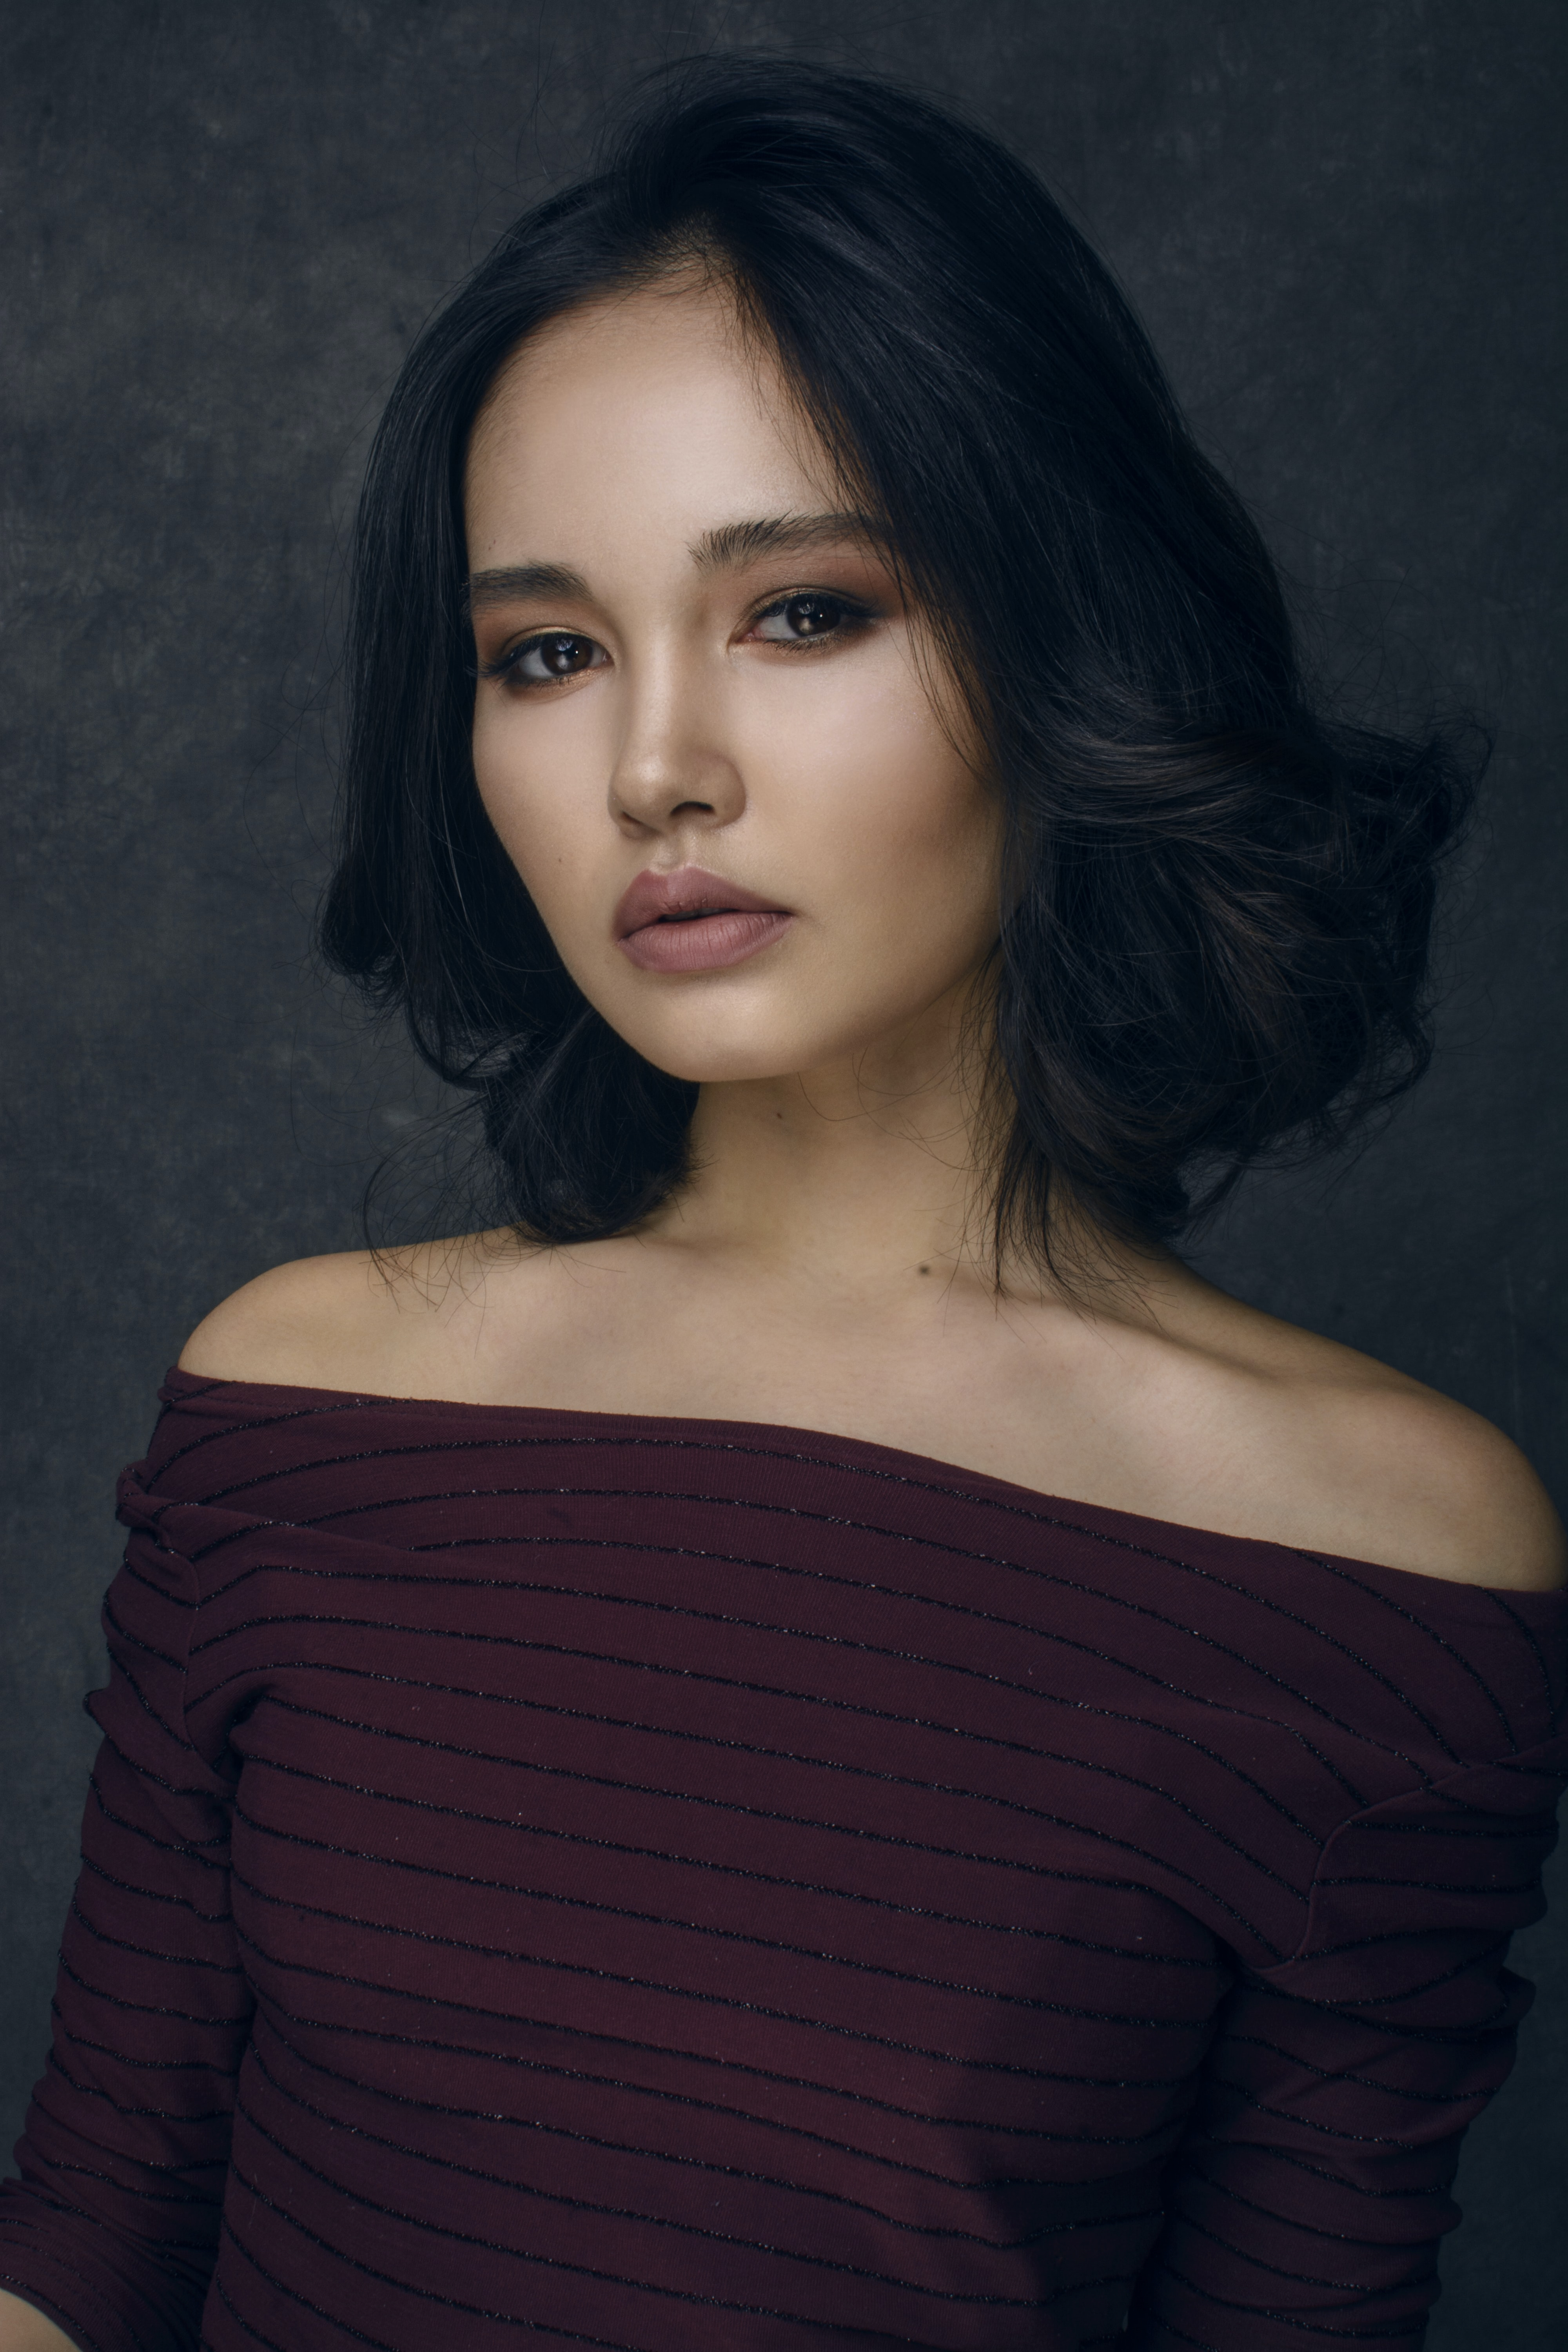 selective focus photography of woman wearing maroon striped off-shoulder shirt